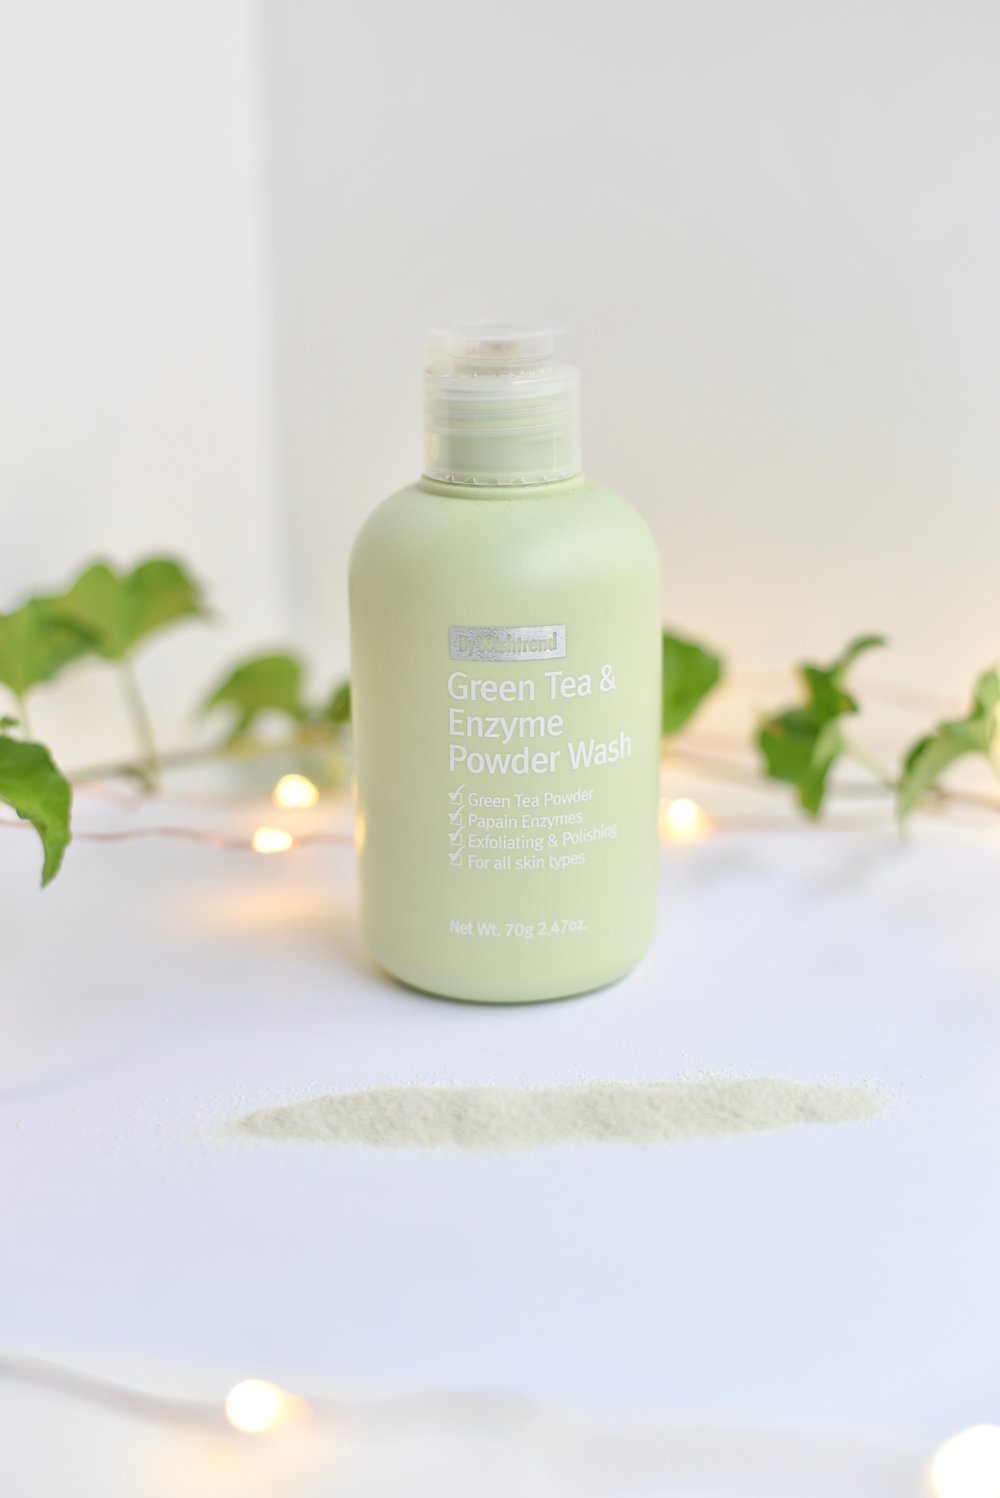 BYWISHTREND GREEN TEA & ENZYME POWDER WASH REVIEW_DSC_0189.jpg